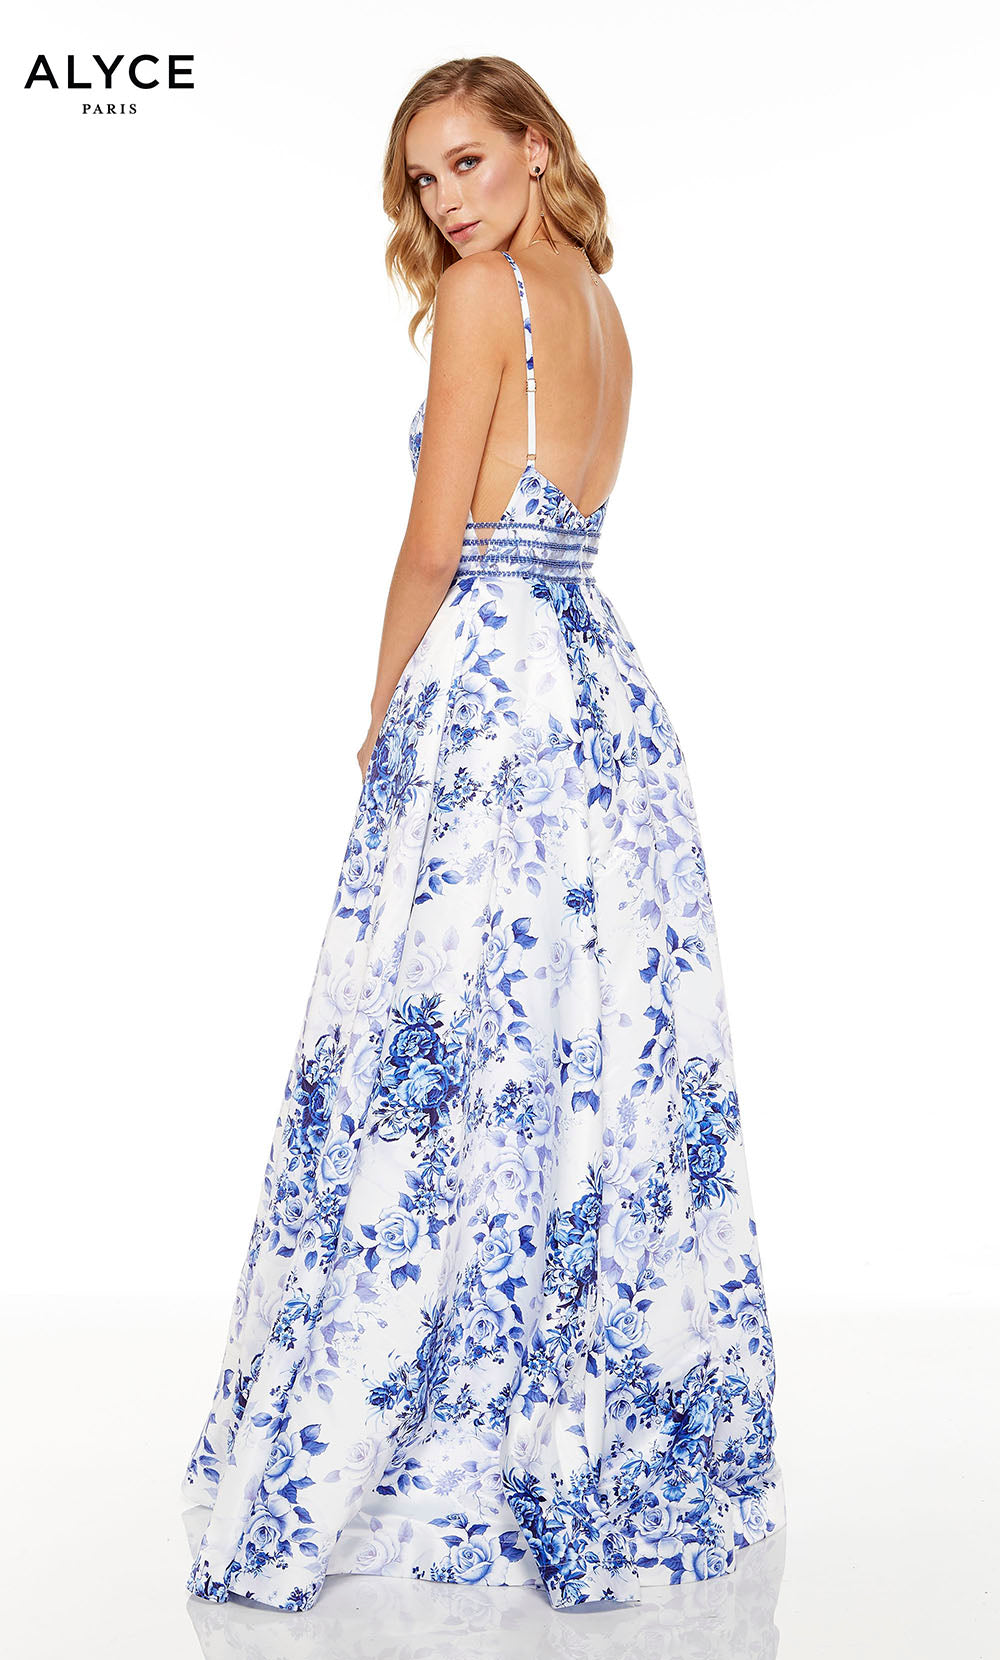 STYLE # 1539 DIAMOND WHITE-ROYAL